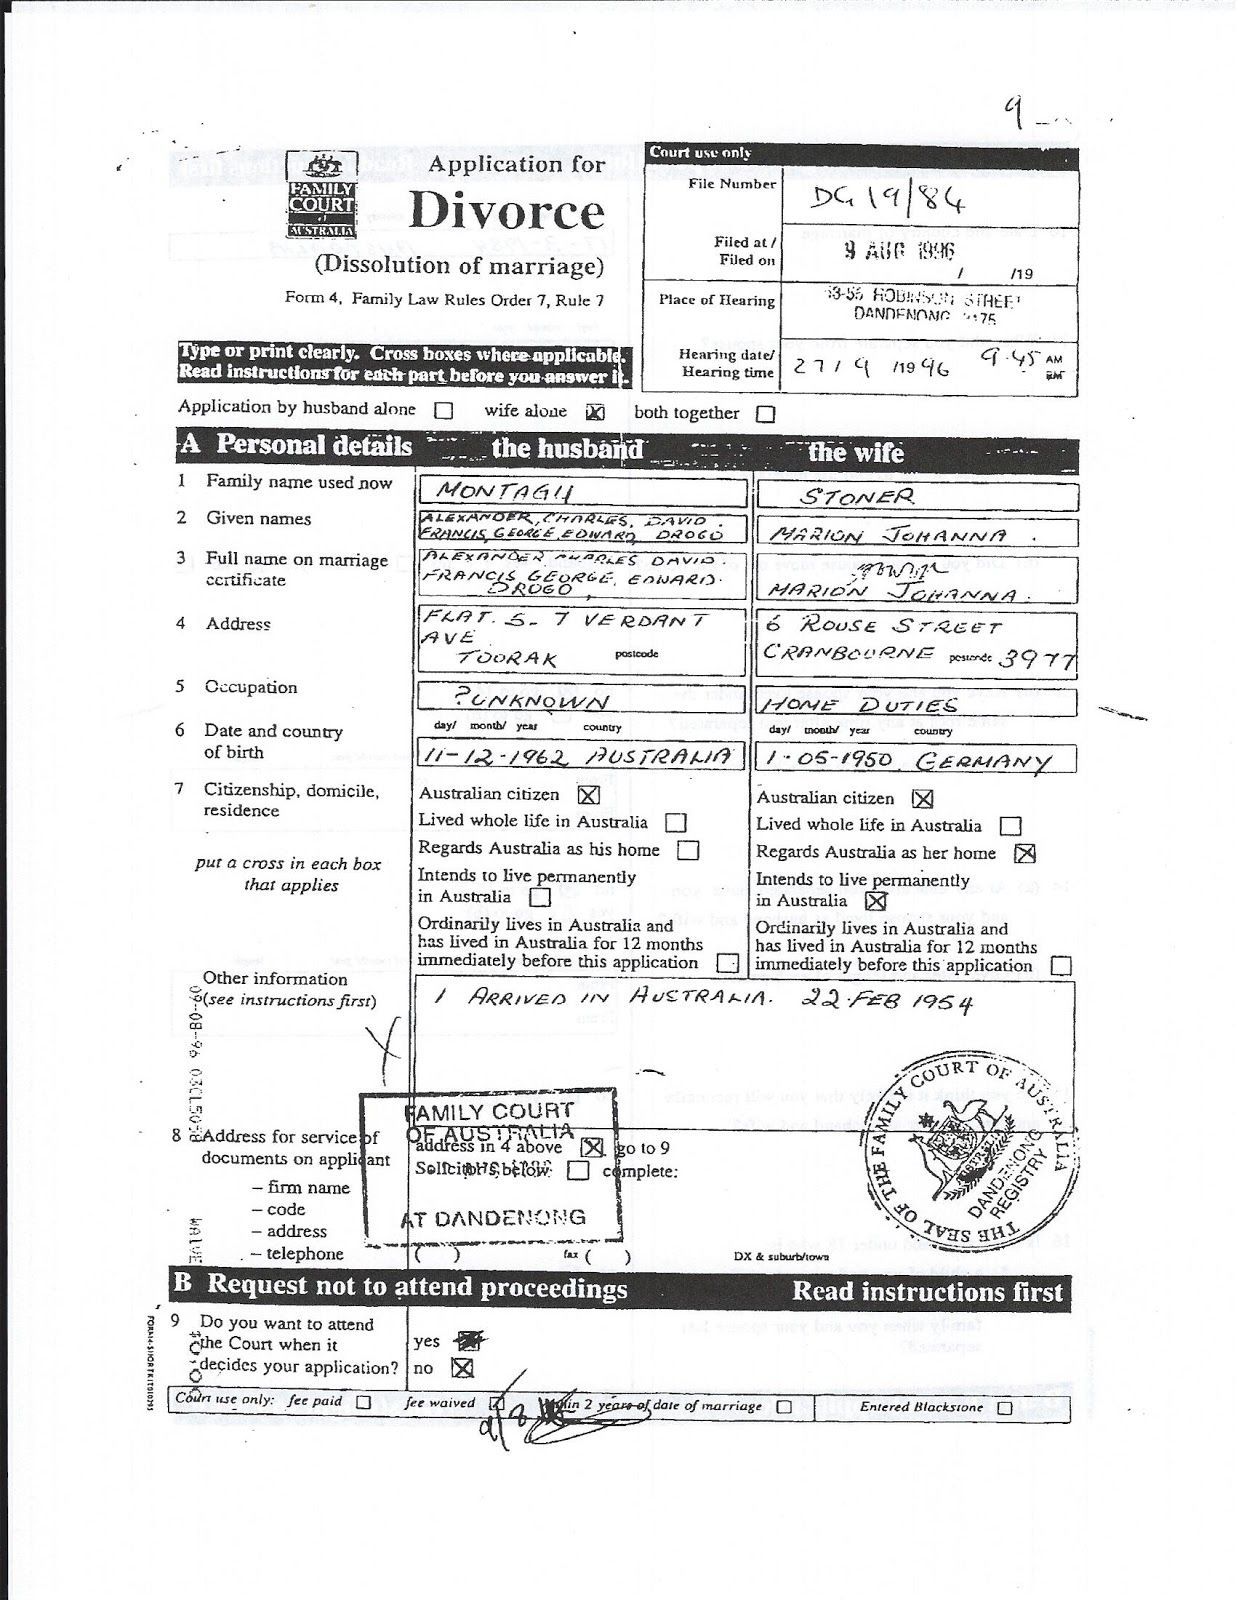 picture relating to Free Printable Divorce Papers for Louisiana called down load divorce certification - Google Glimpse Divorce styles